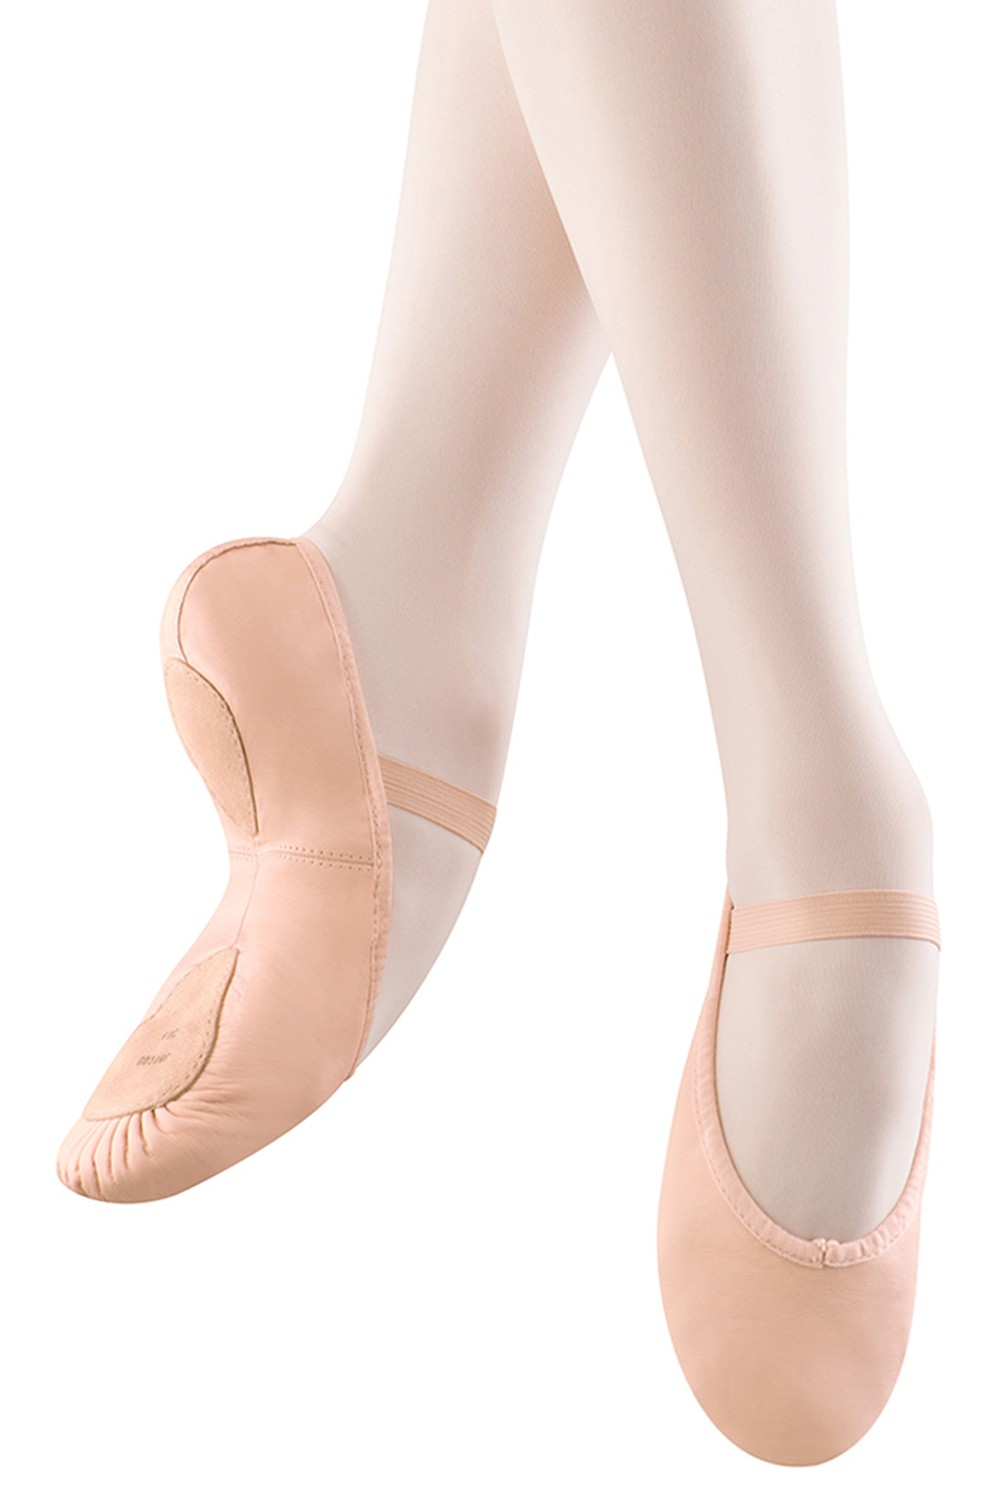 Dansoft Split Sole - Girls Girl's Ballet Shoes